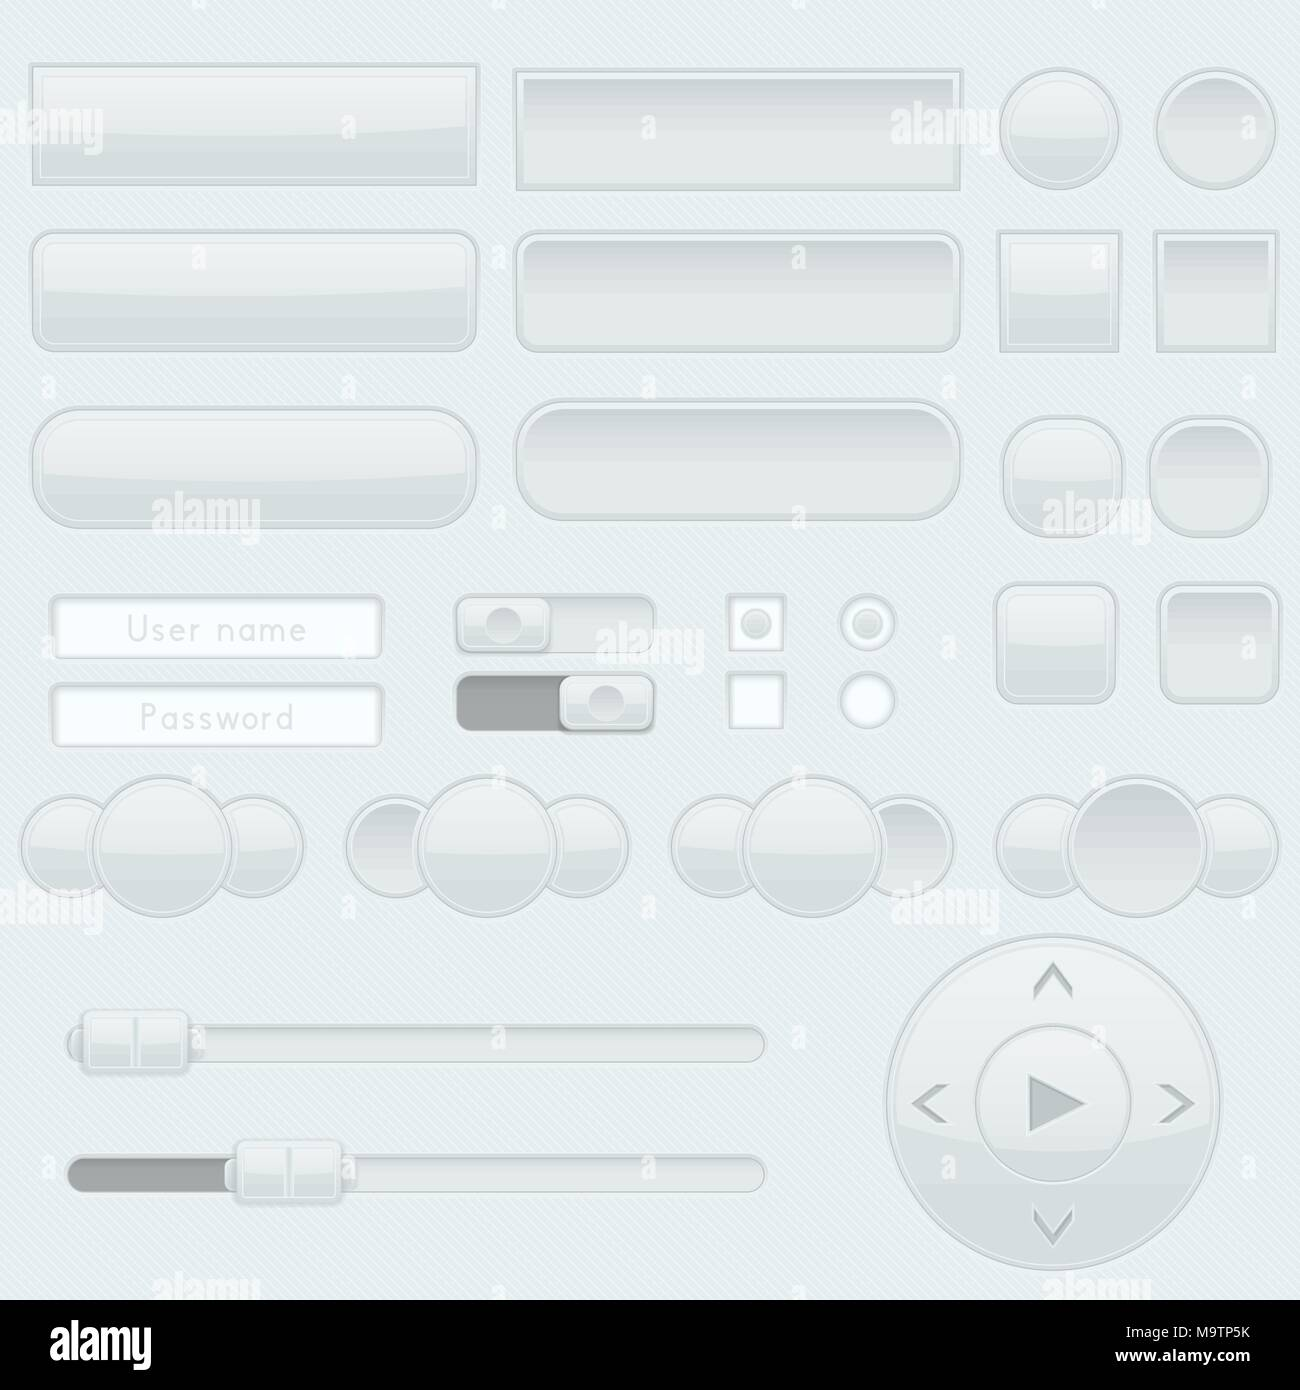 Light grey interface buttons, sliders and toggle switches - Stock Image